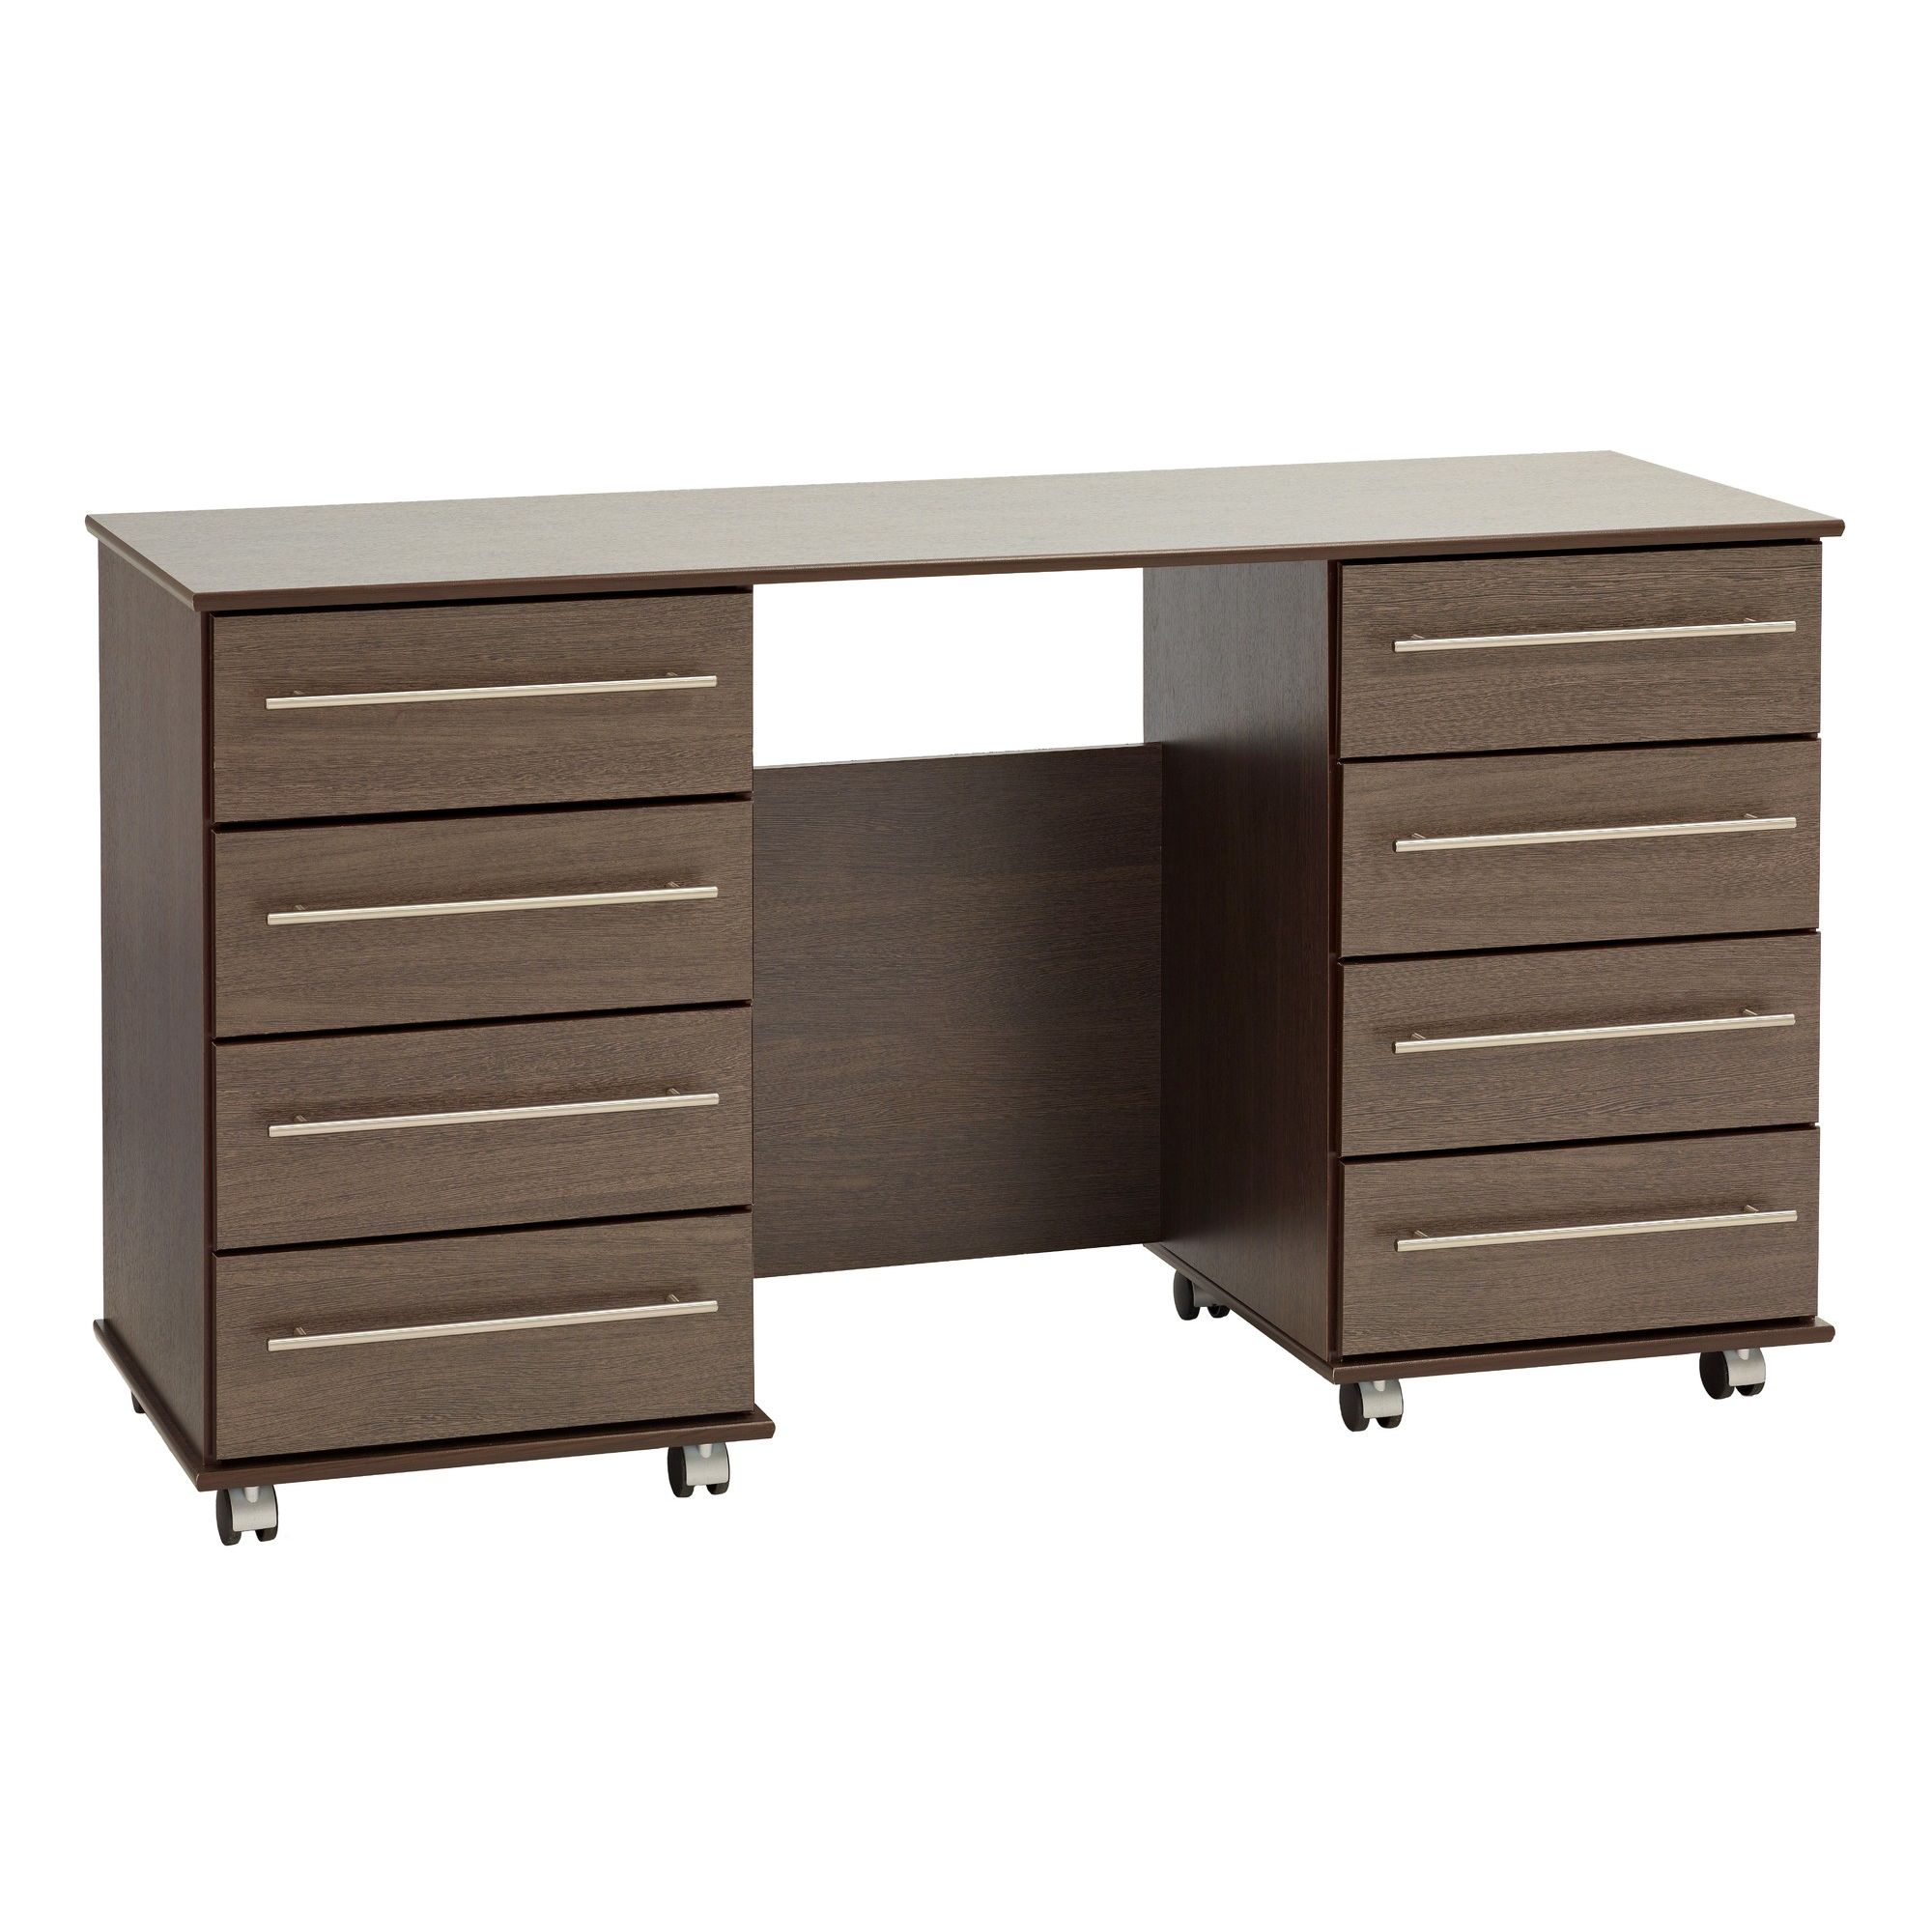 Ideal Furniture New York Double Dressing Table - Beech at Tesco Direct